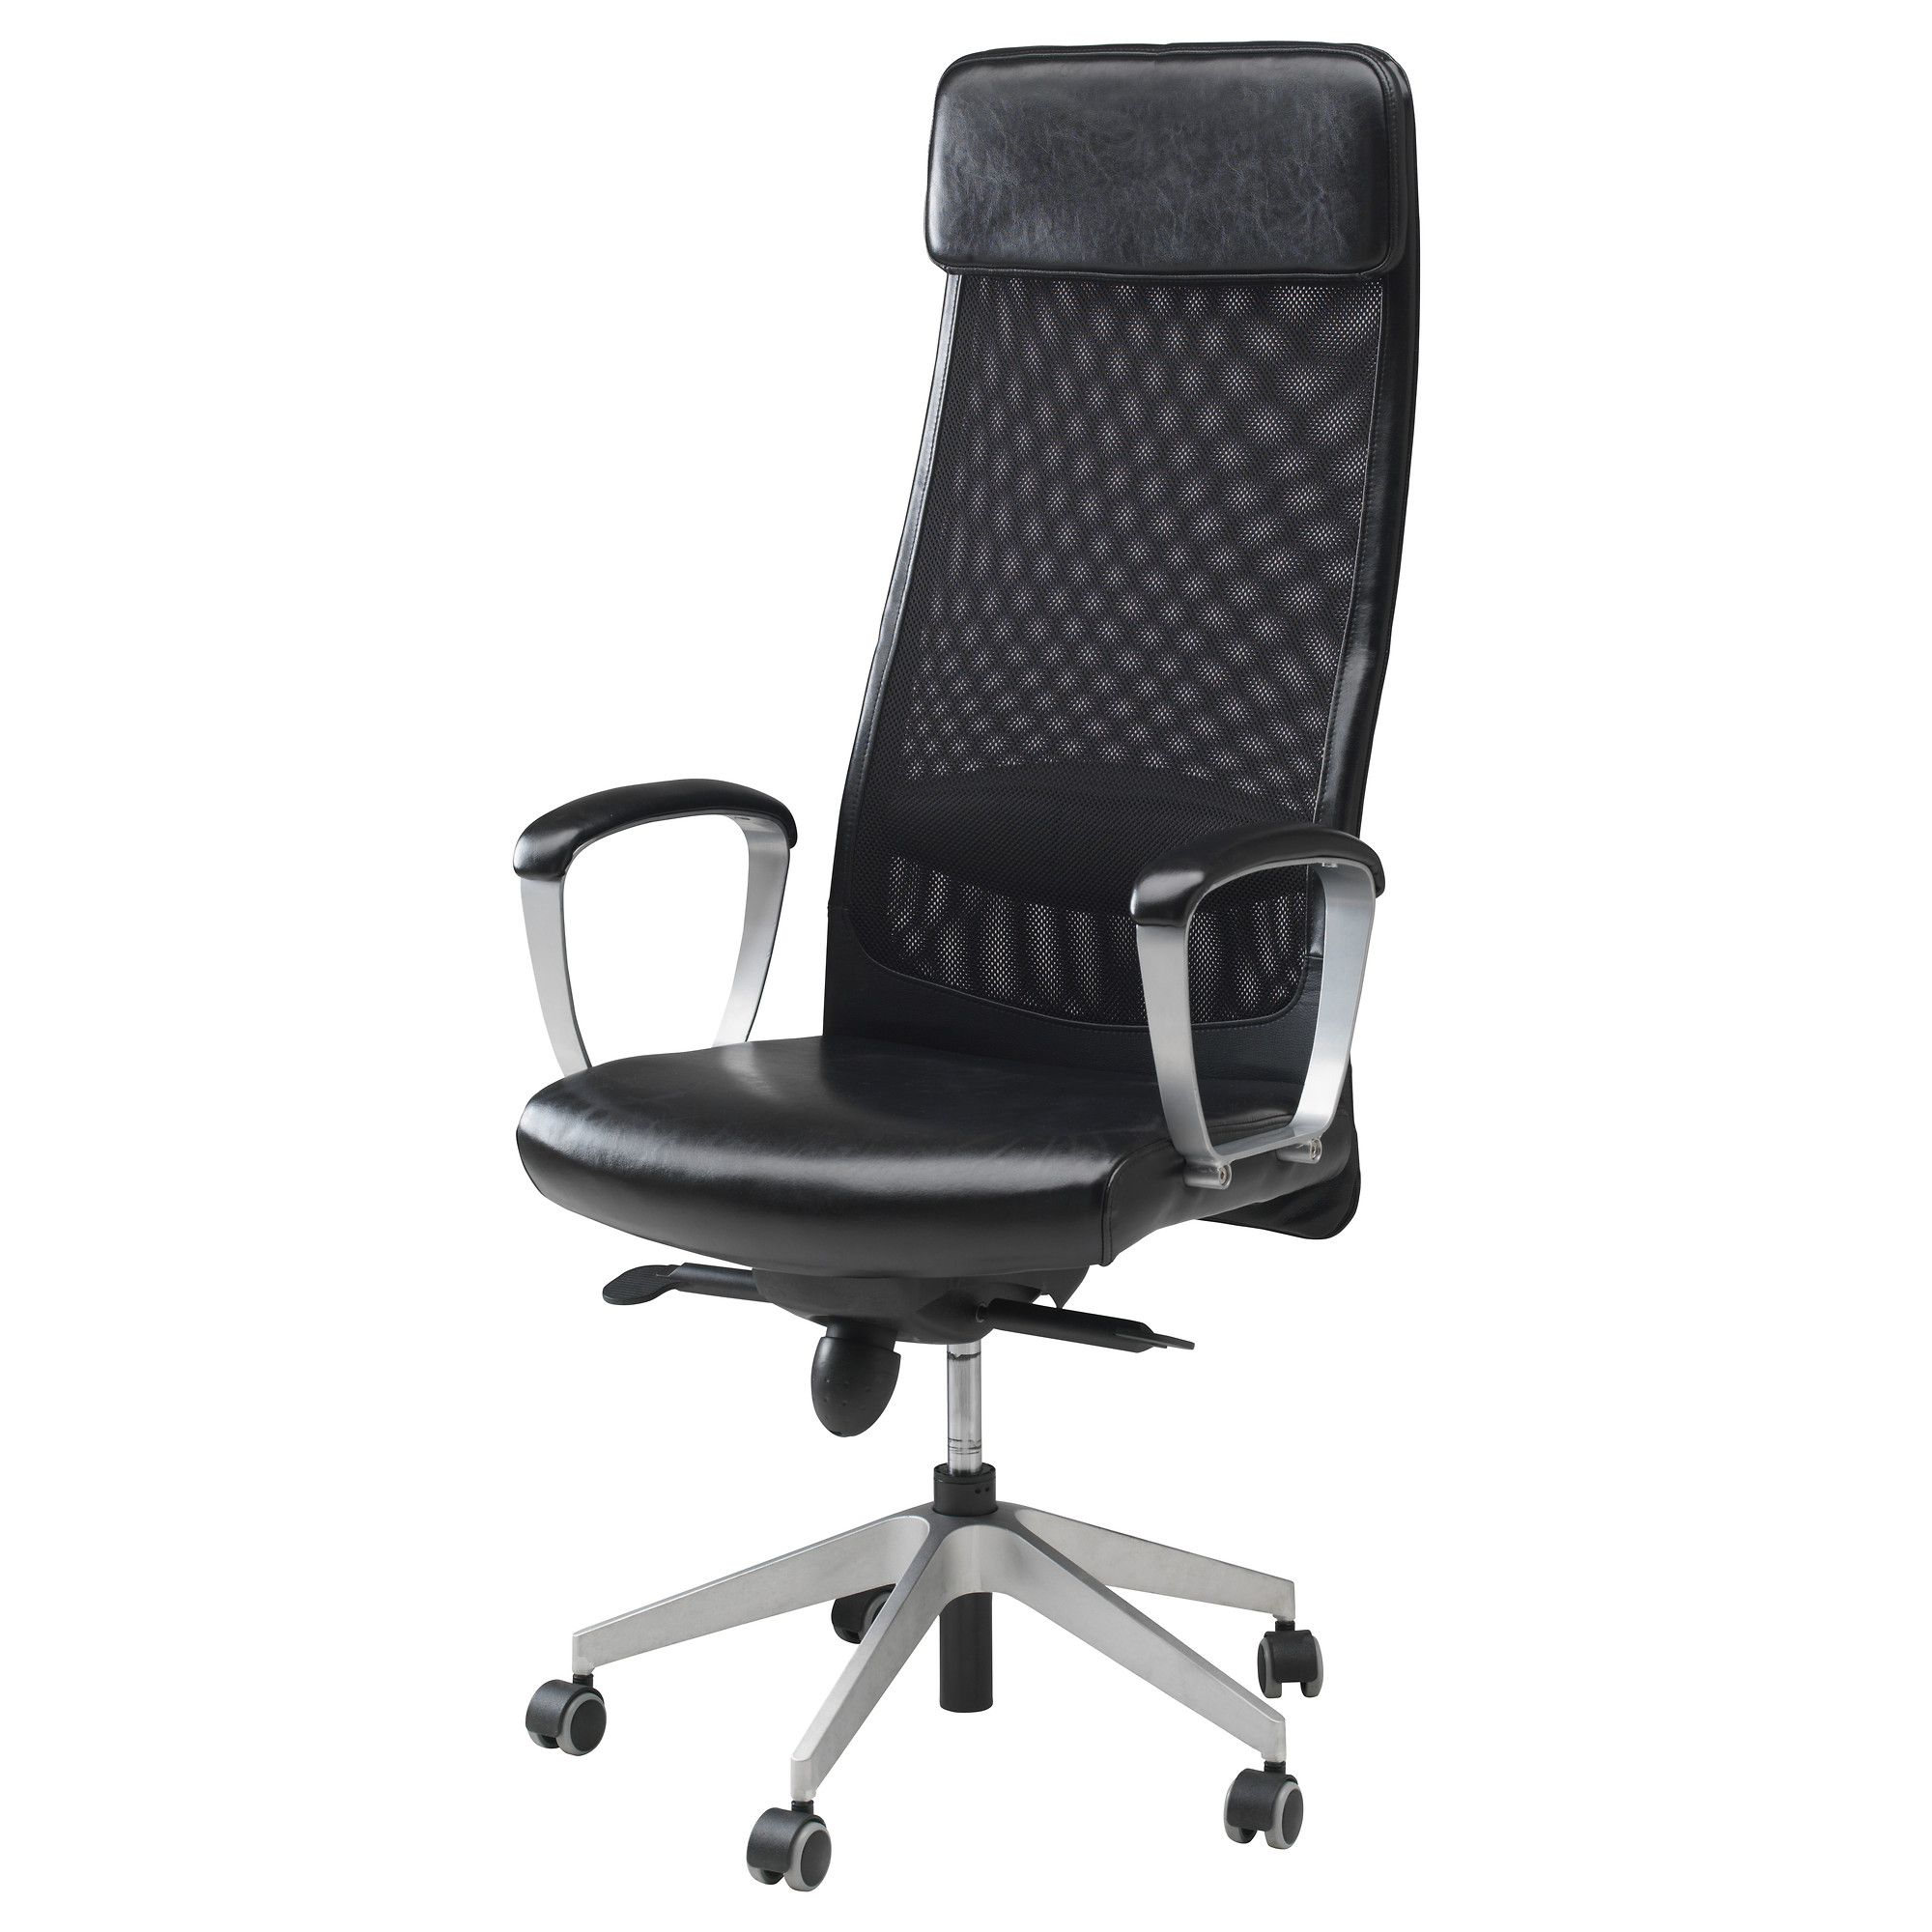 Fingal Swivel Chair Markus Office Chair Black Glose Robust Black I D Like This